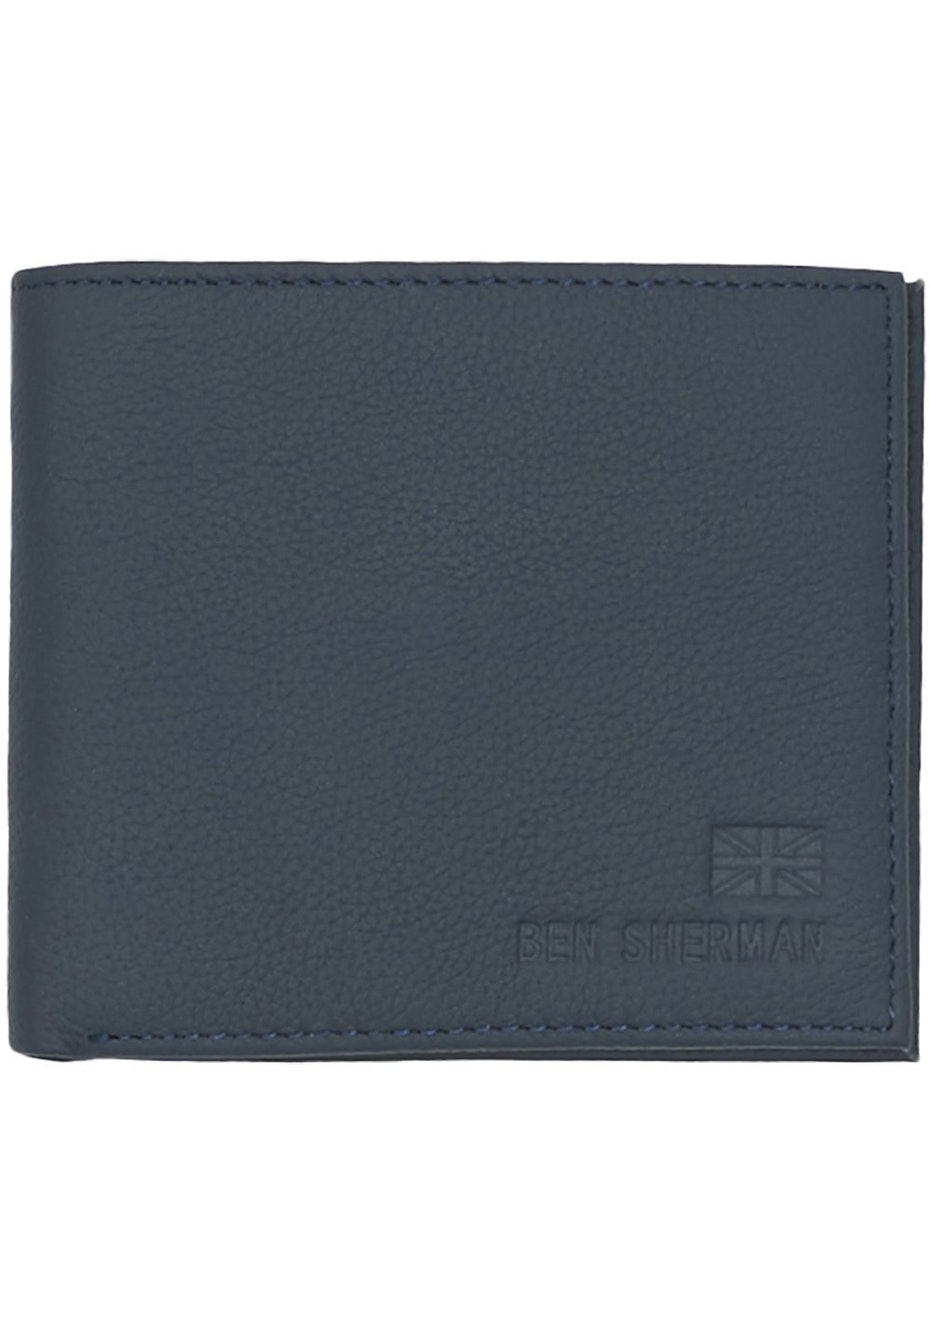 Ben Sherman - Digital Print Billfold Wallet Navy